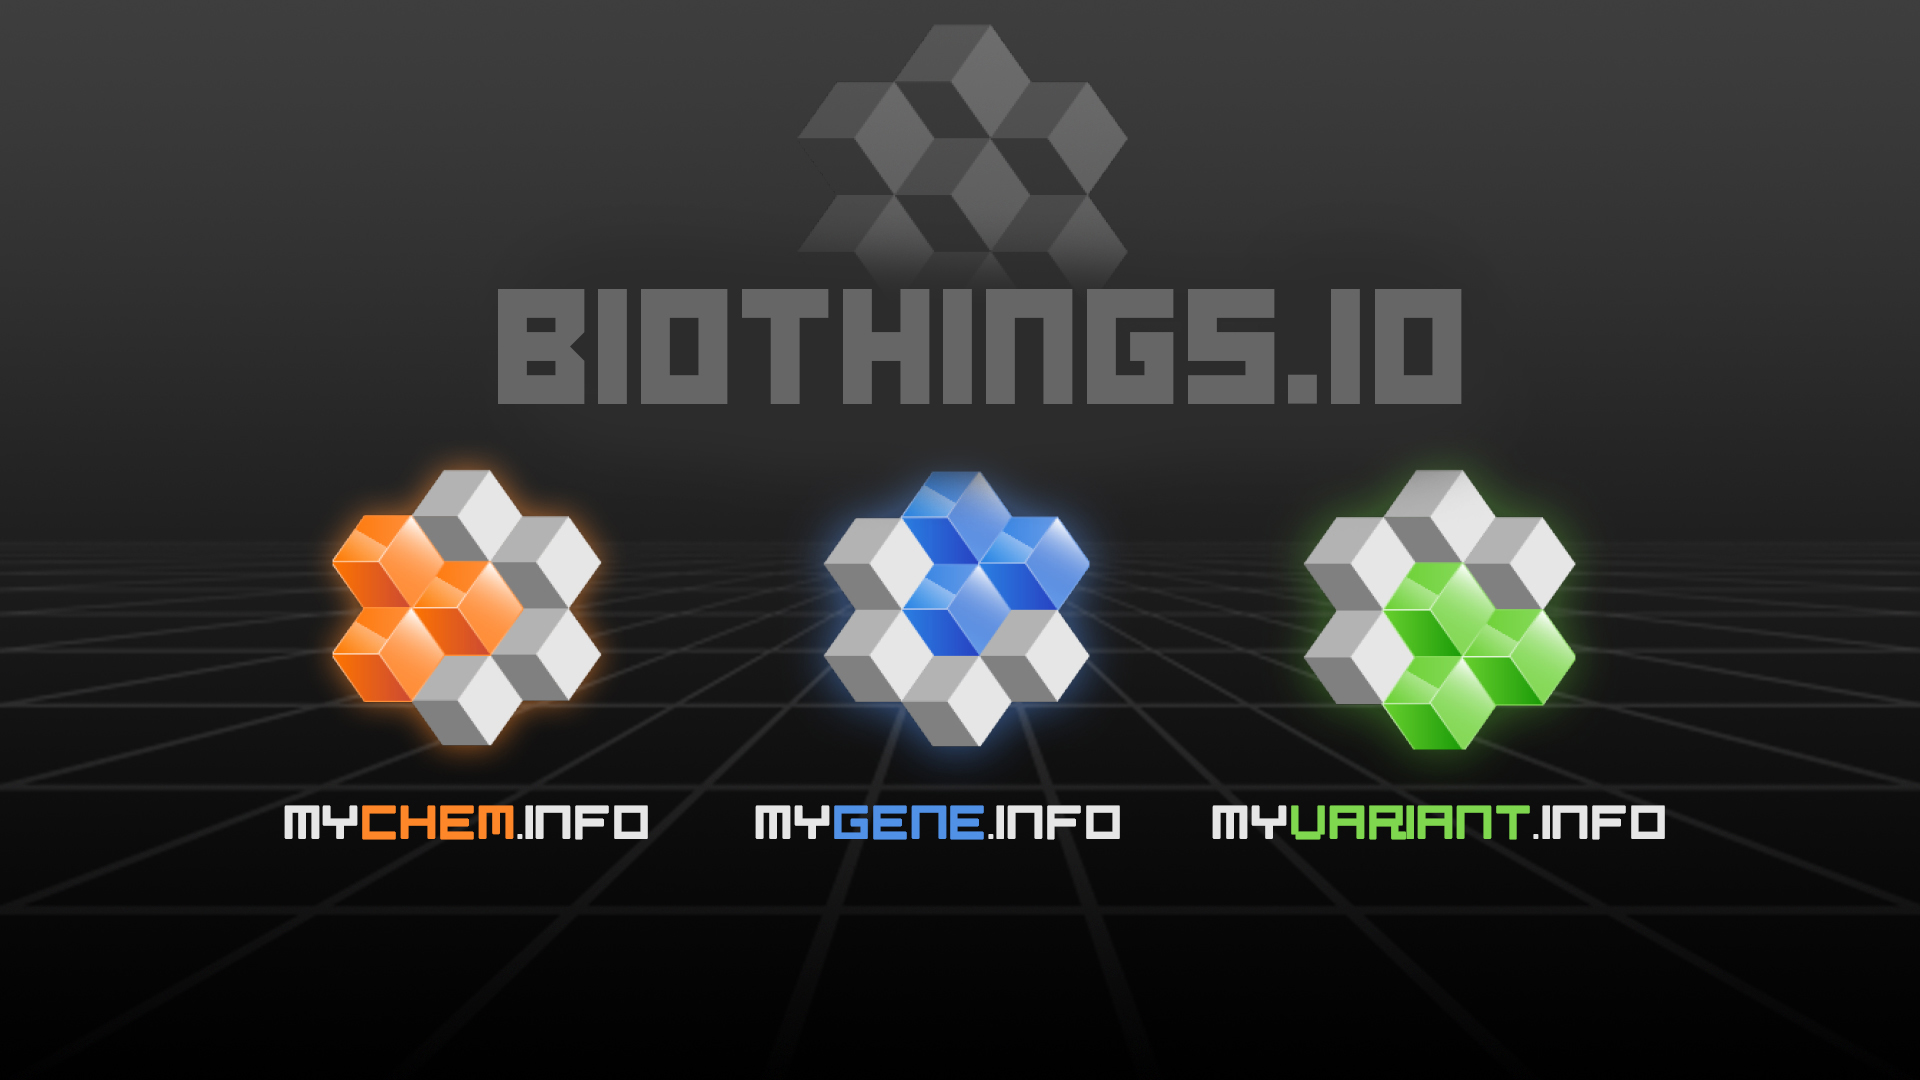 image of new biothings logo